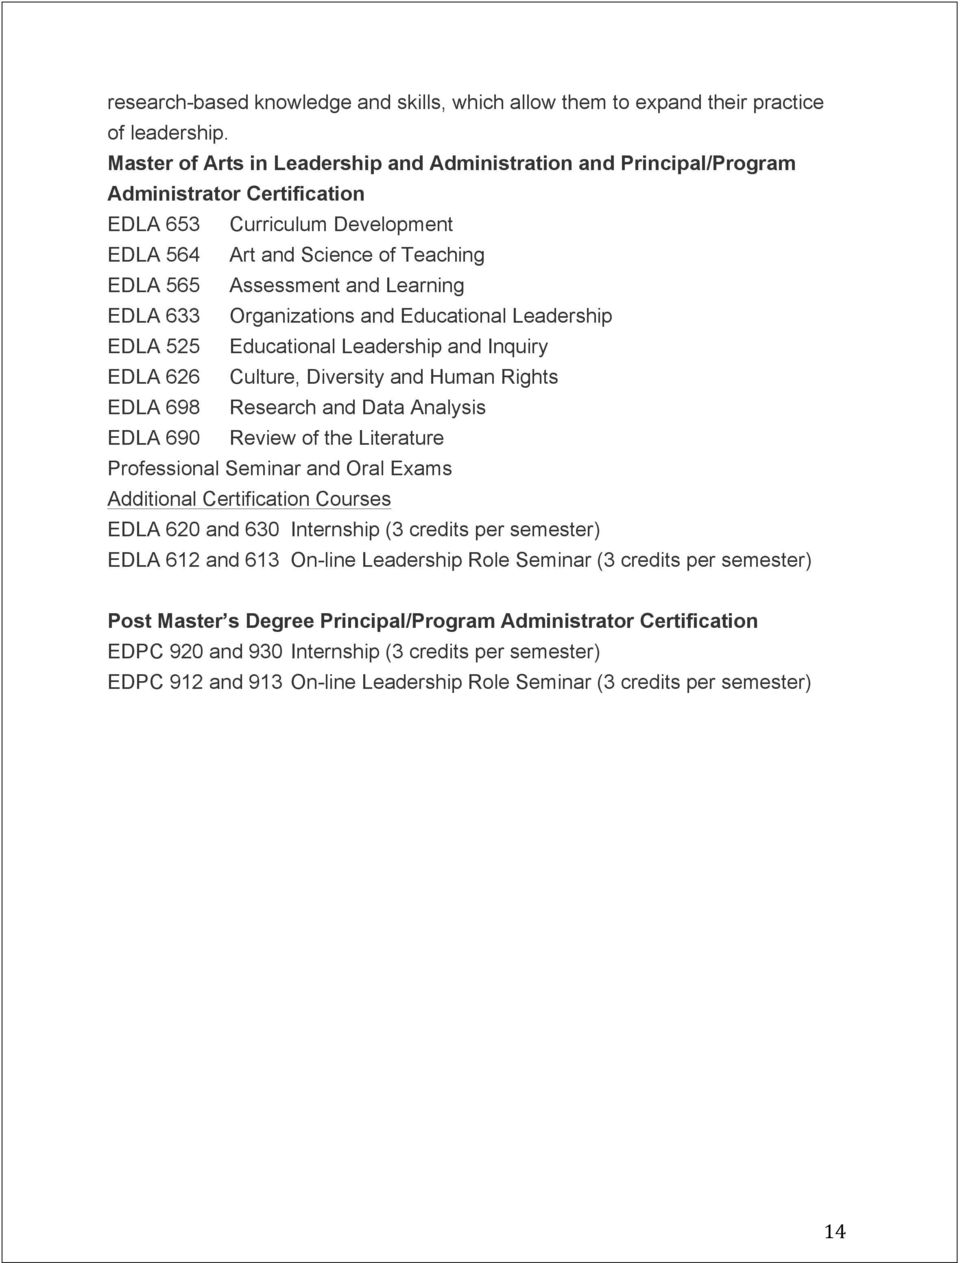 EDLA 633 Organizations and Educational Leadership EDLA 525 Educational Leadership and Inquiry EDLA 626 Culture, Diversity and Human Rights EDLA 698 Research and Data Analysis EDLA 690 Review of the